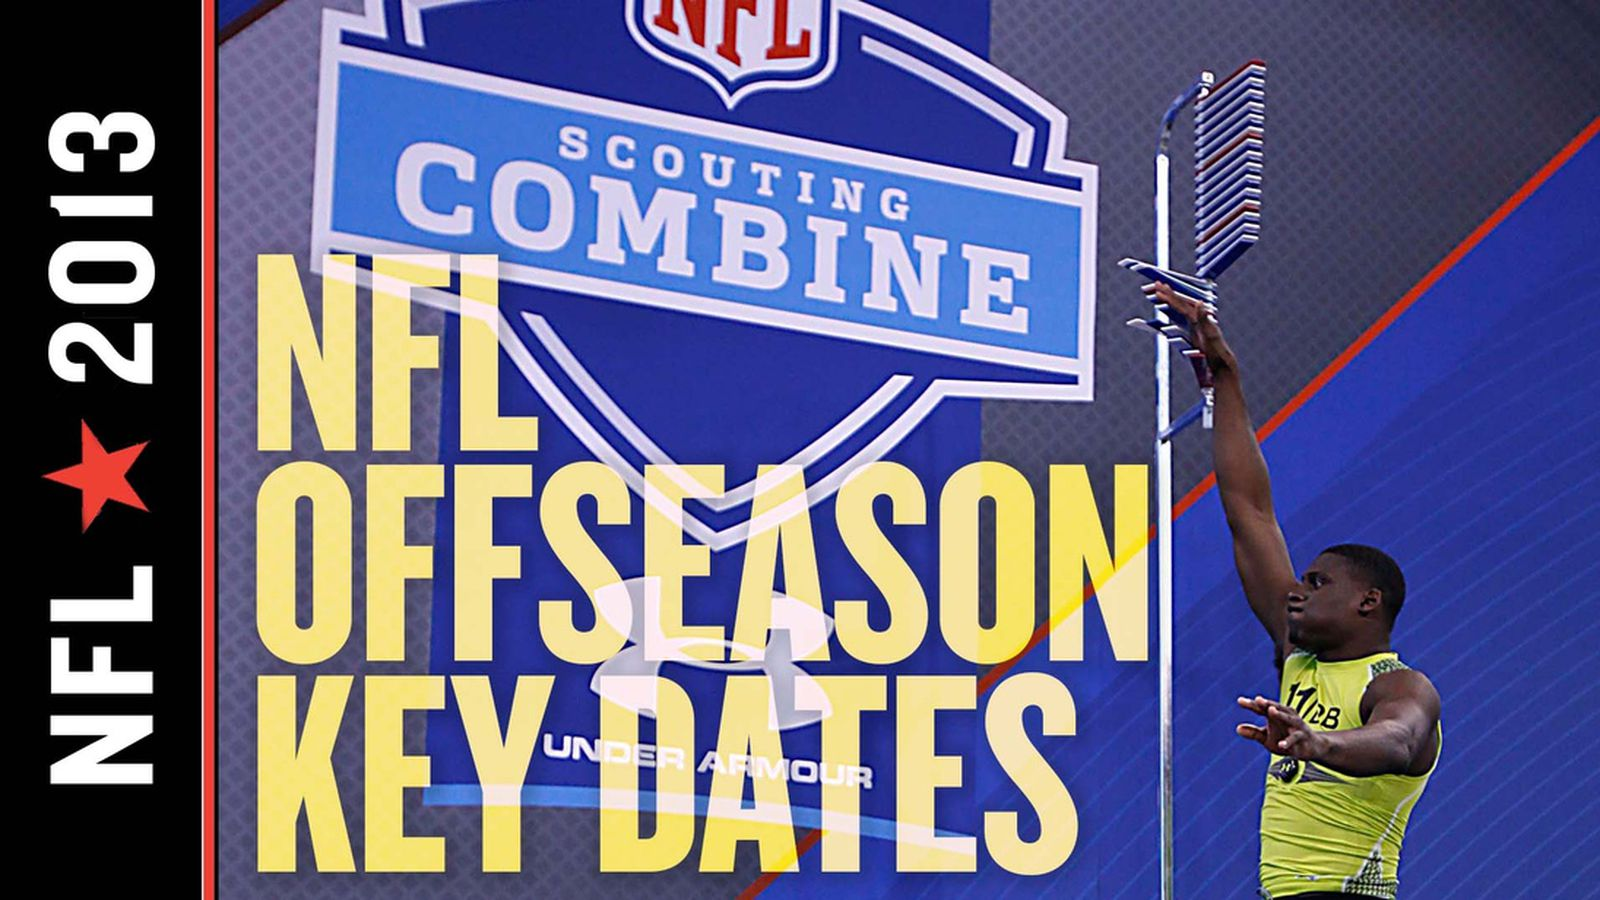 Nfl free agency date in Perth